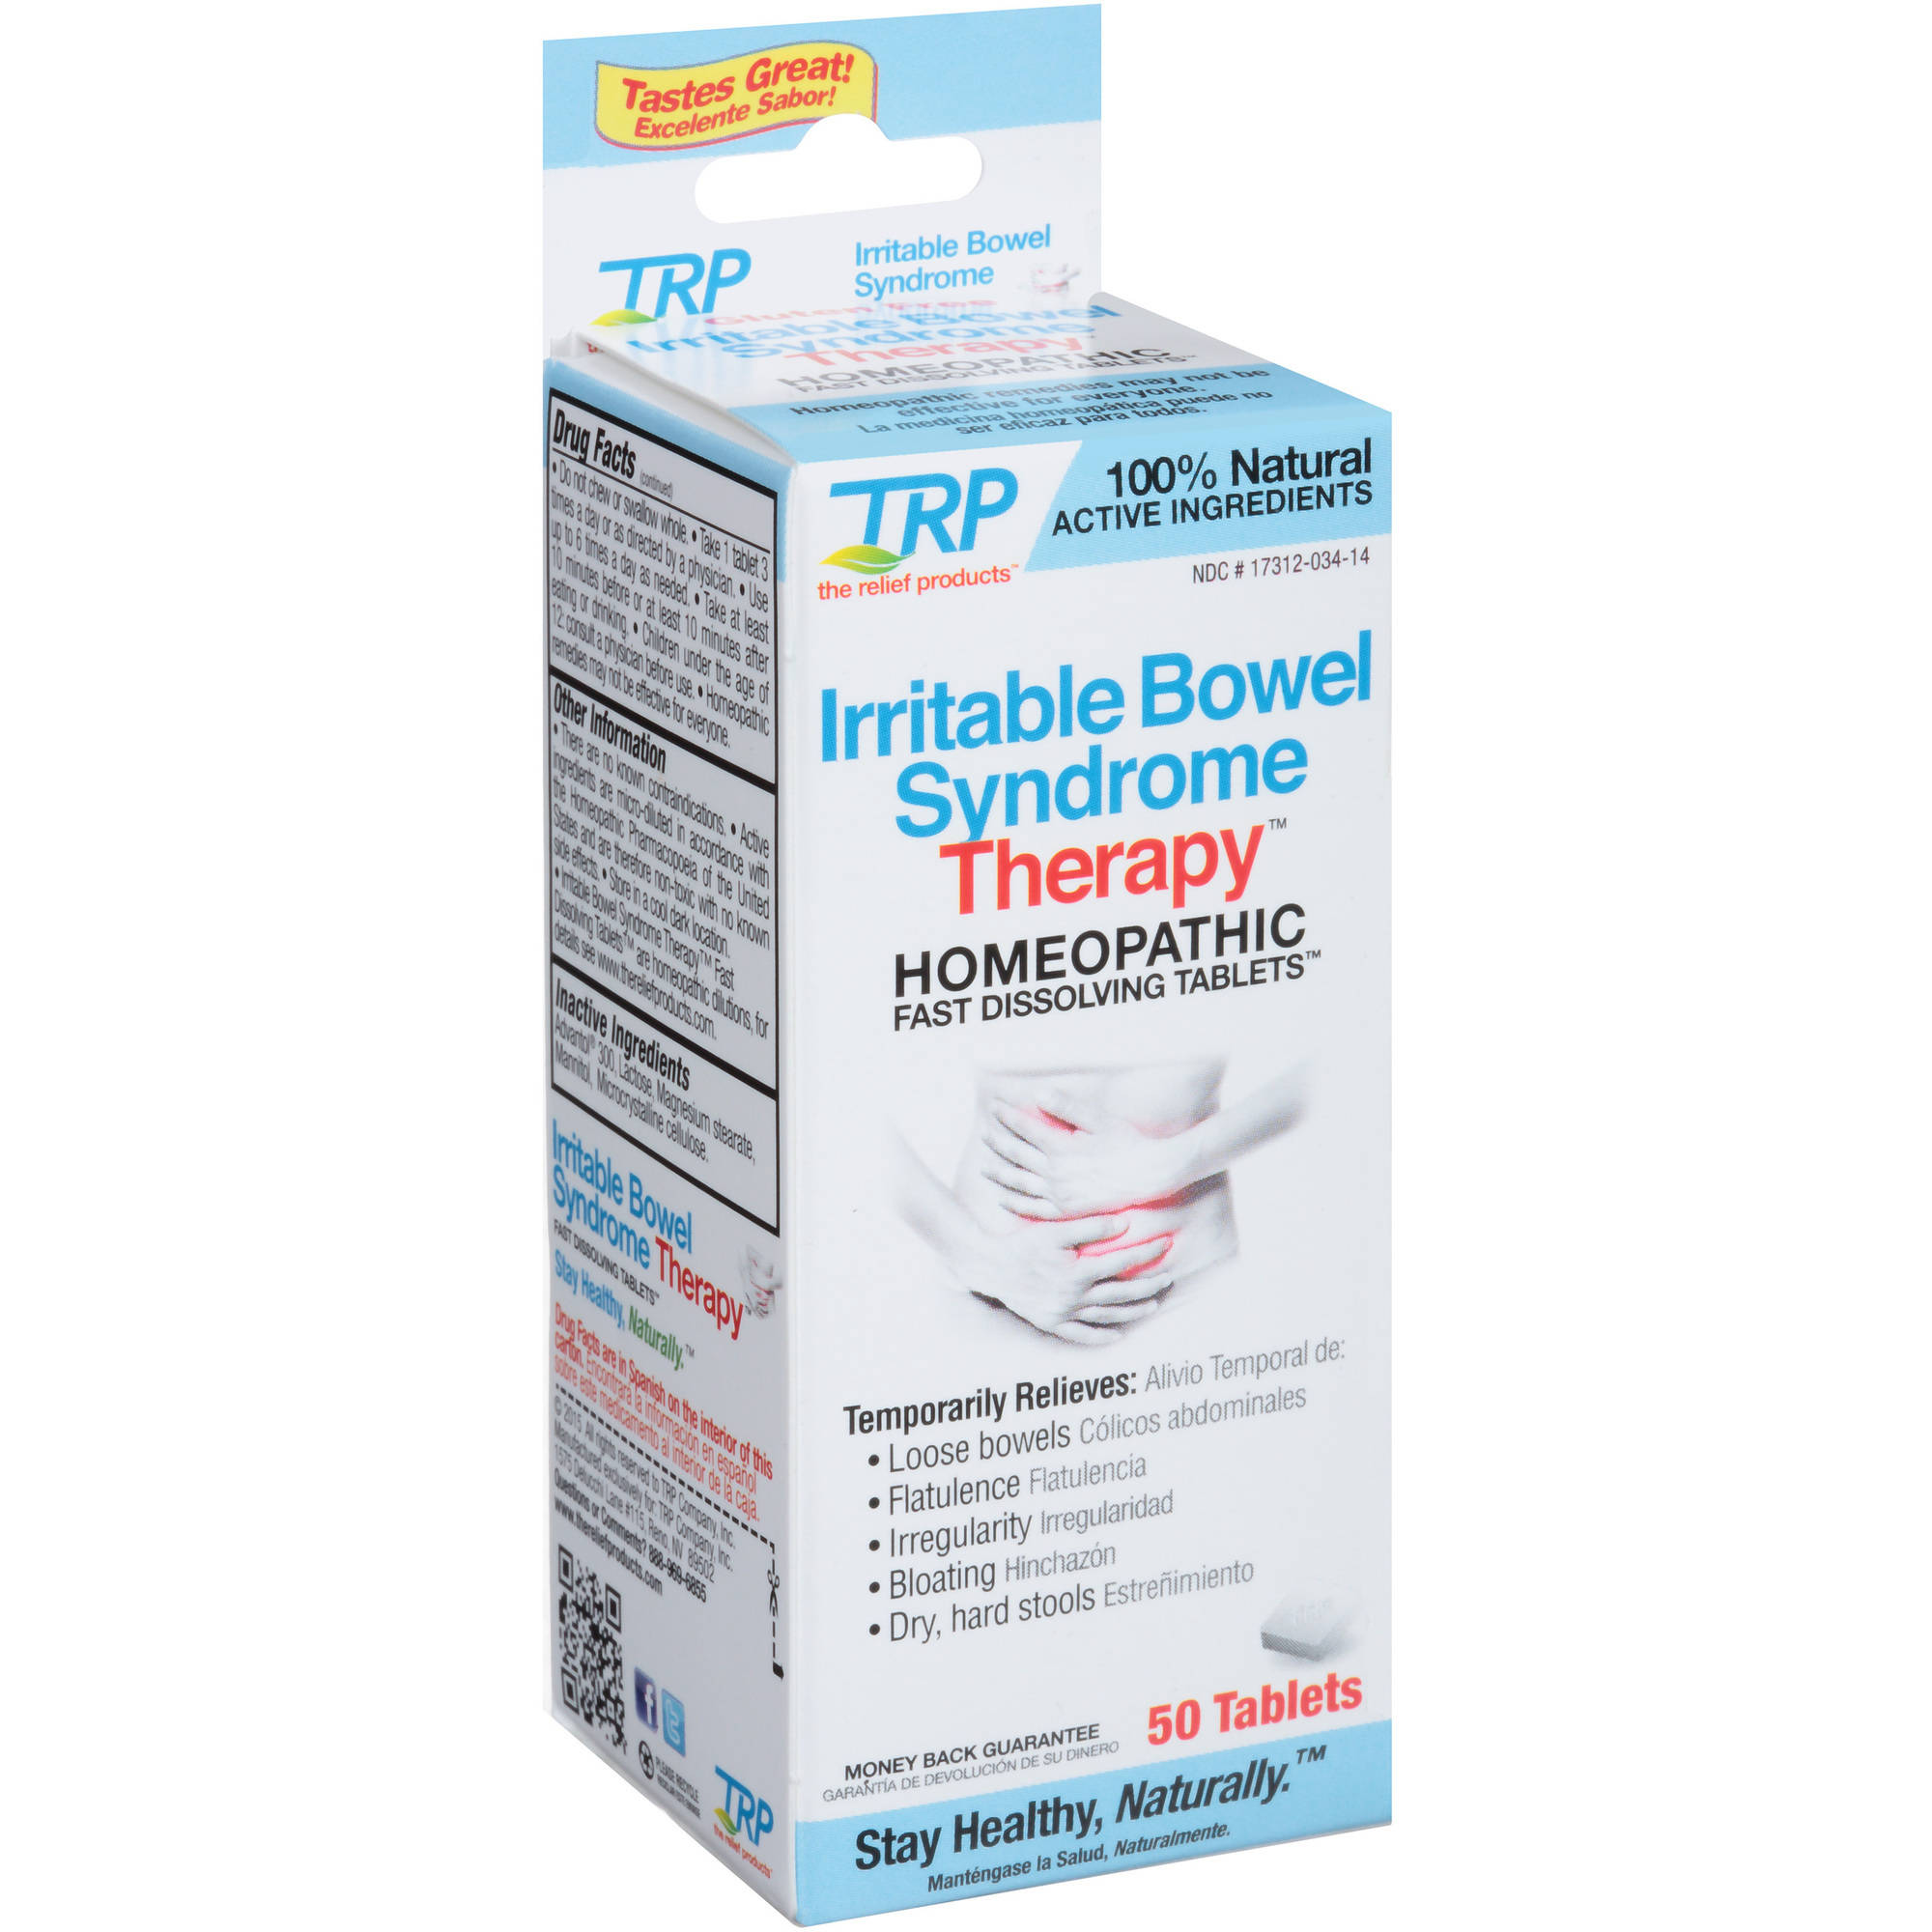 TRP Irritable Bowel Syndrome Therapy Homeopathic Fast Dissolving Tablets, 50 count